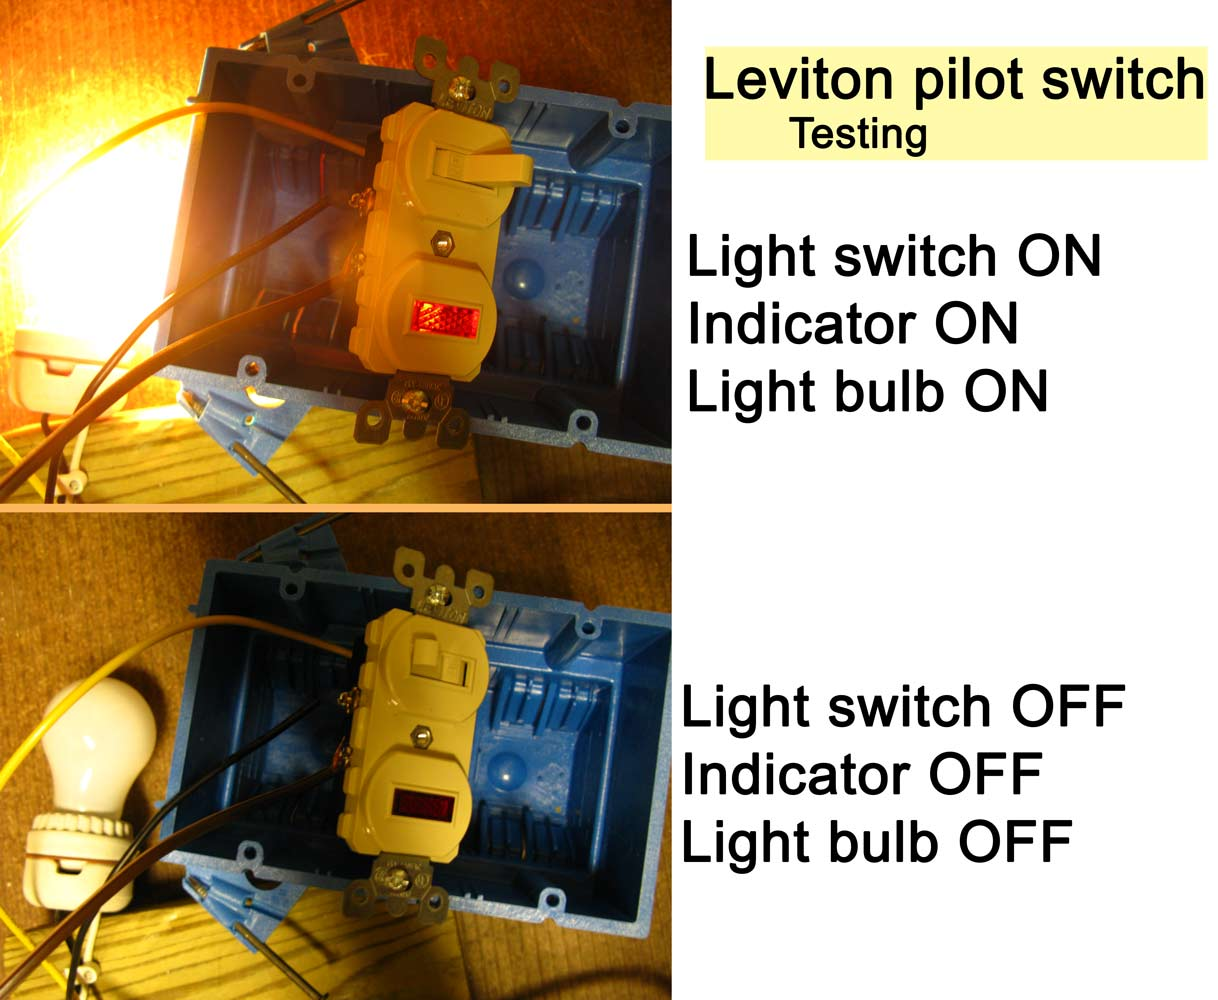 How To Wire Combination Switch Outlet Wiring Diagram Light And Cooper 277 Pilot See Testing Photographs 1 2